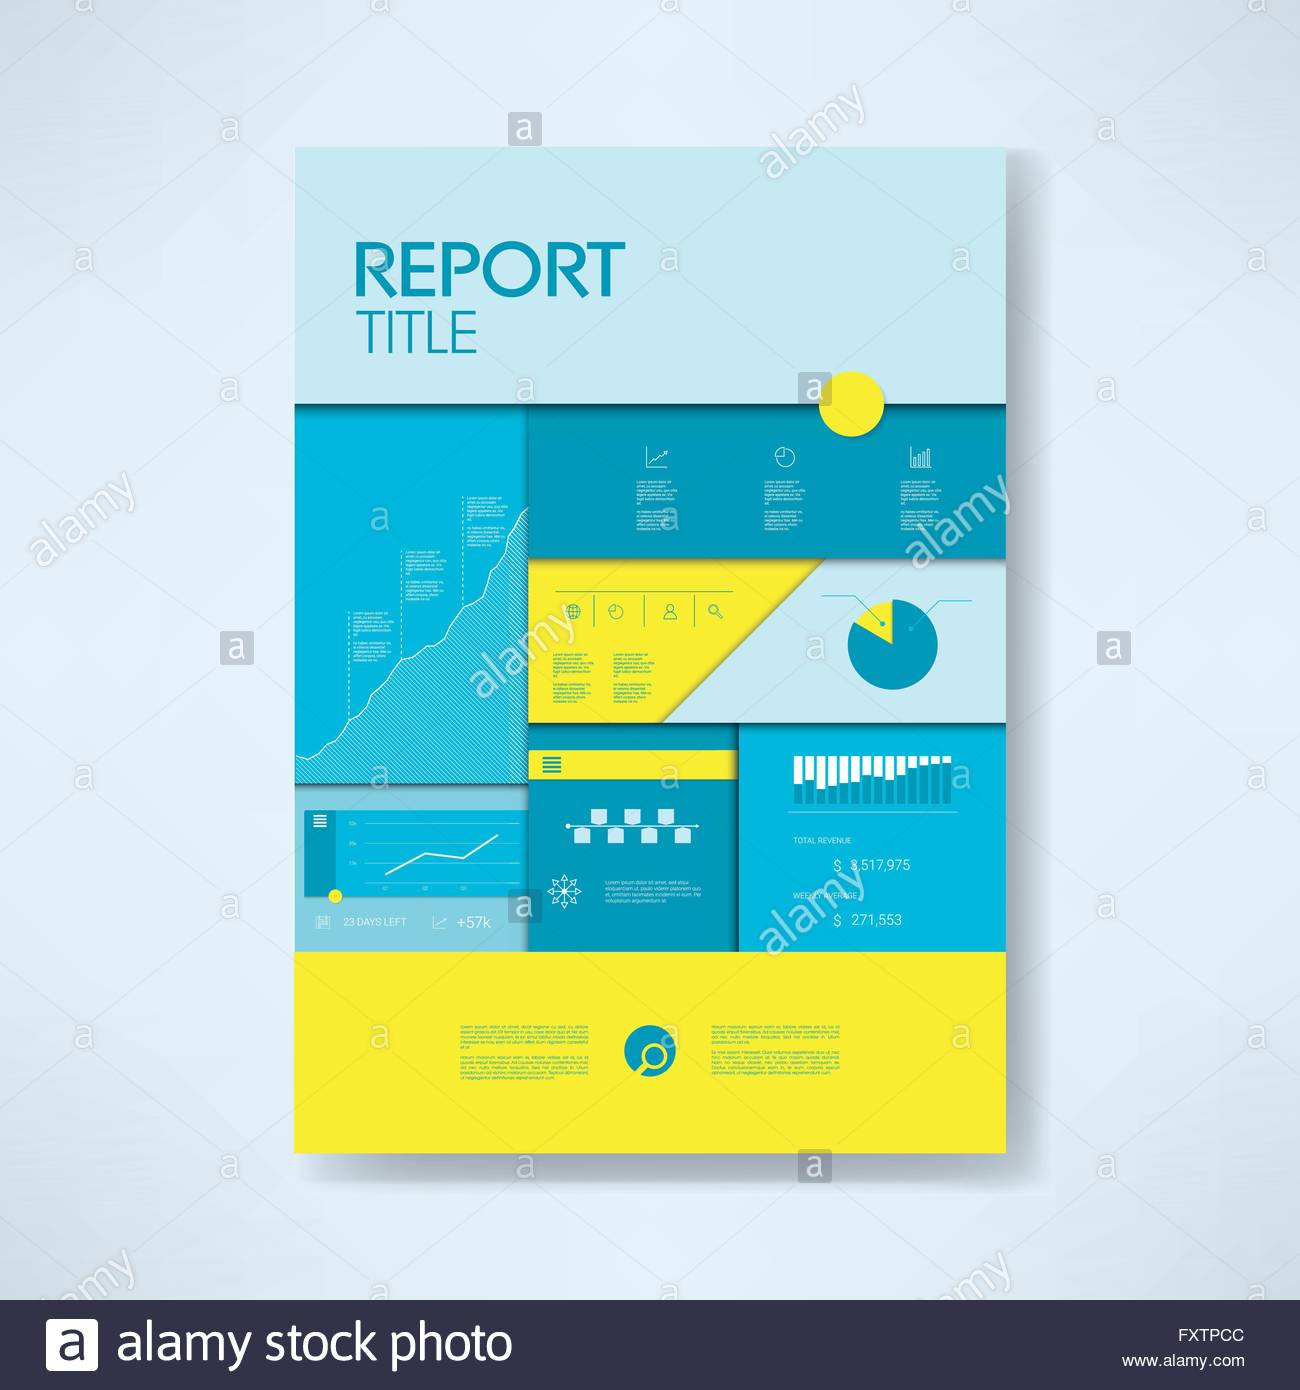 annual report cover template business icons and elements pie annual report cover template business icons and elements pie chart graphs infographics layout